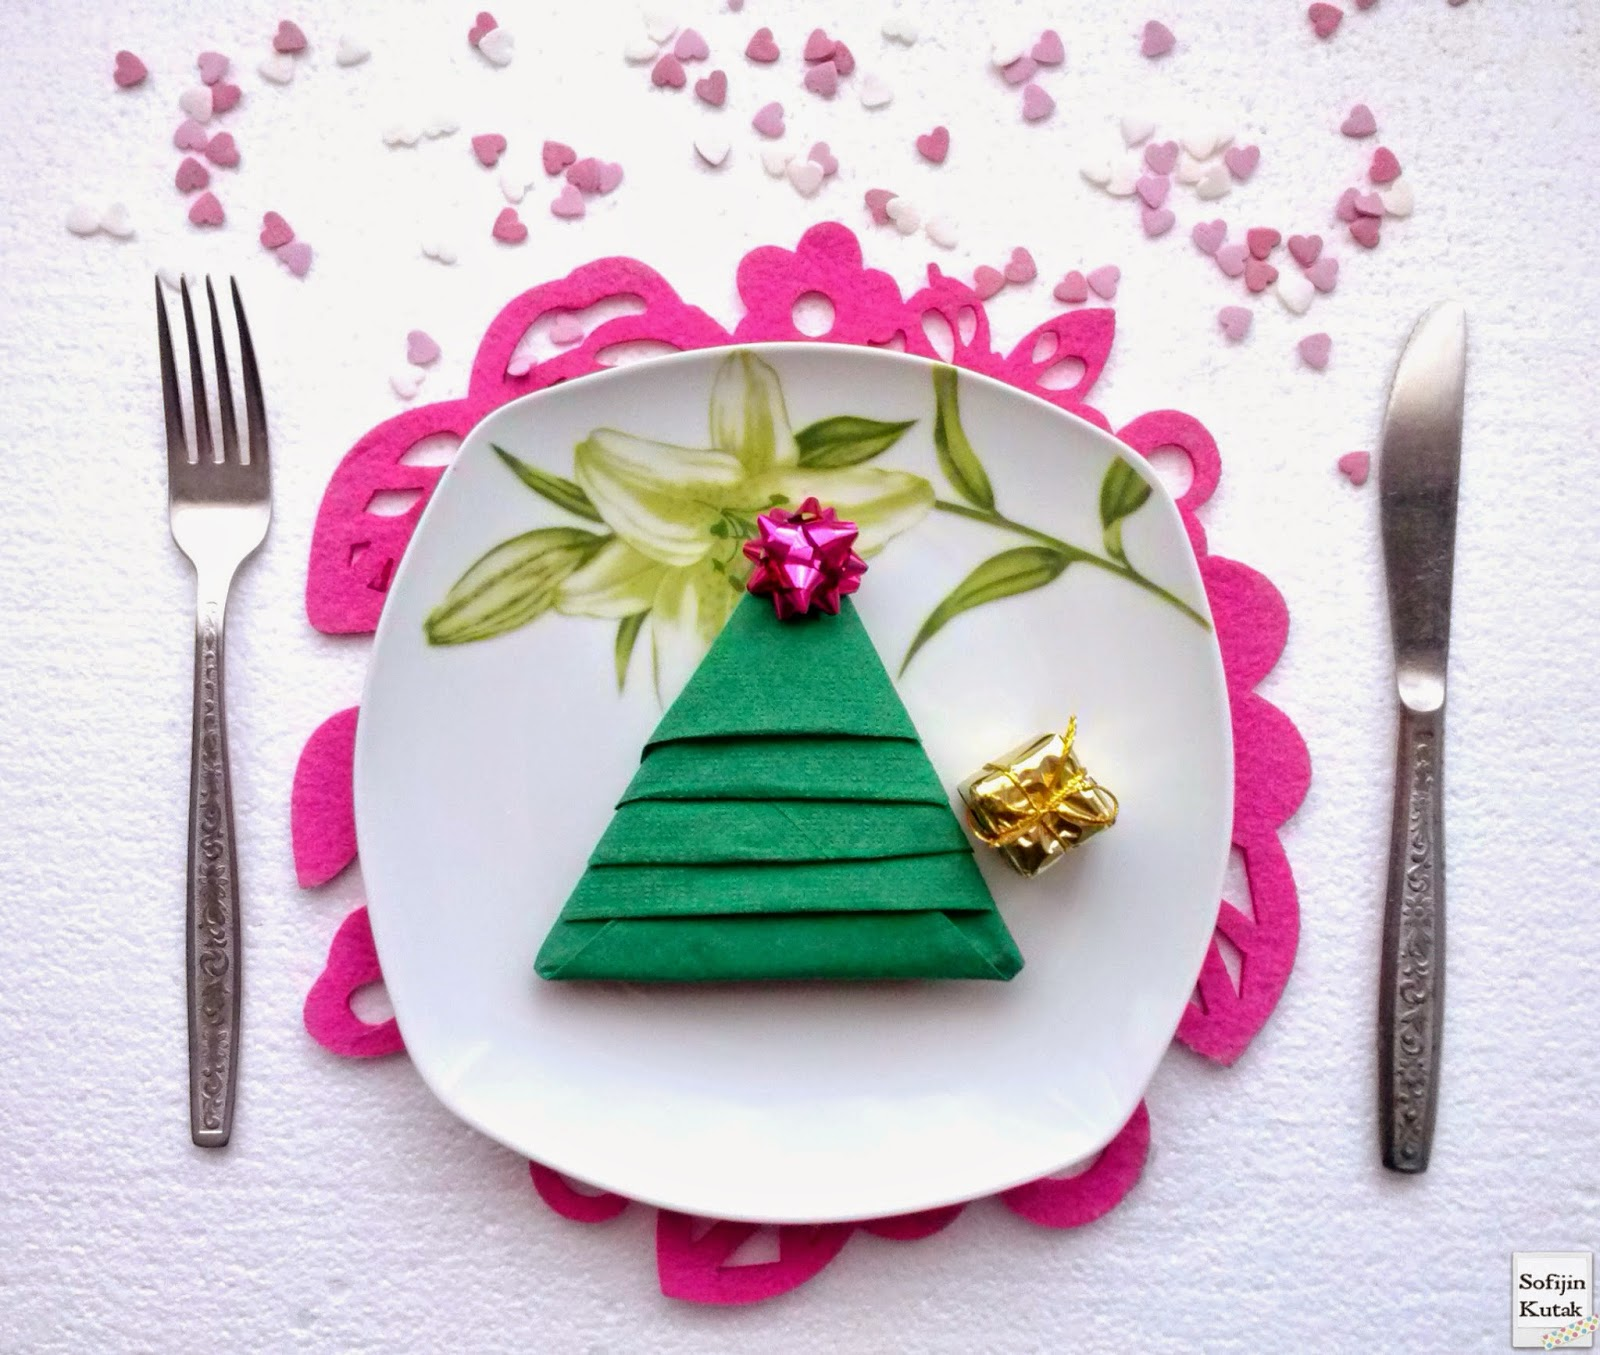 Sofijin Kutak: Christmas tree on the plate!